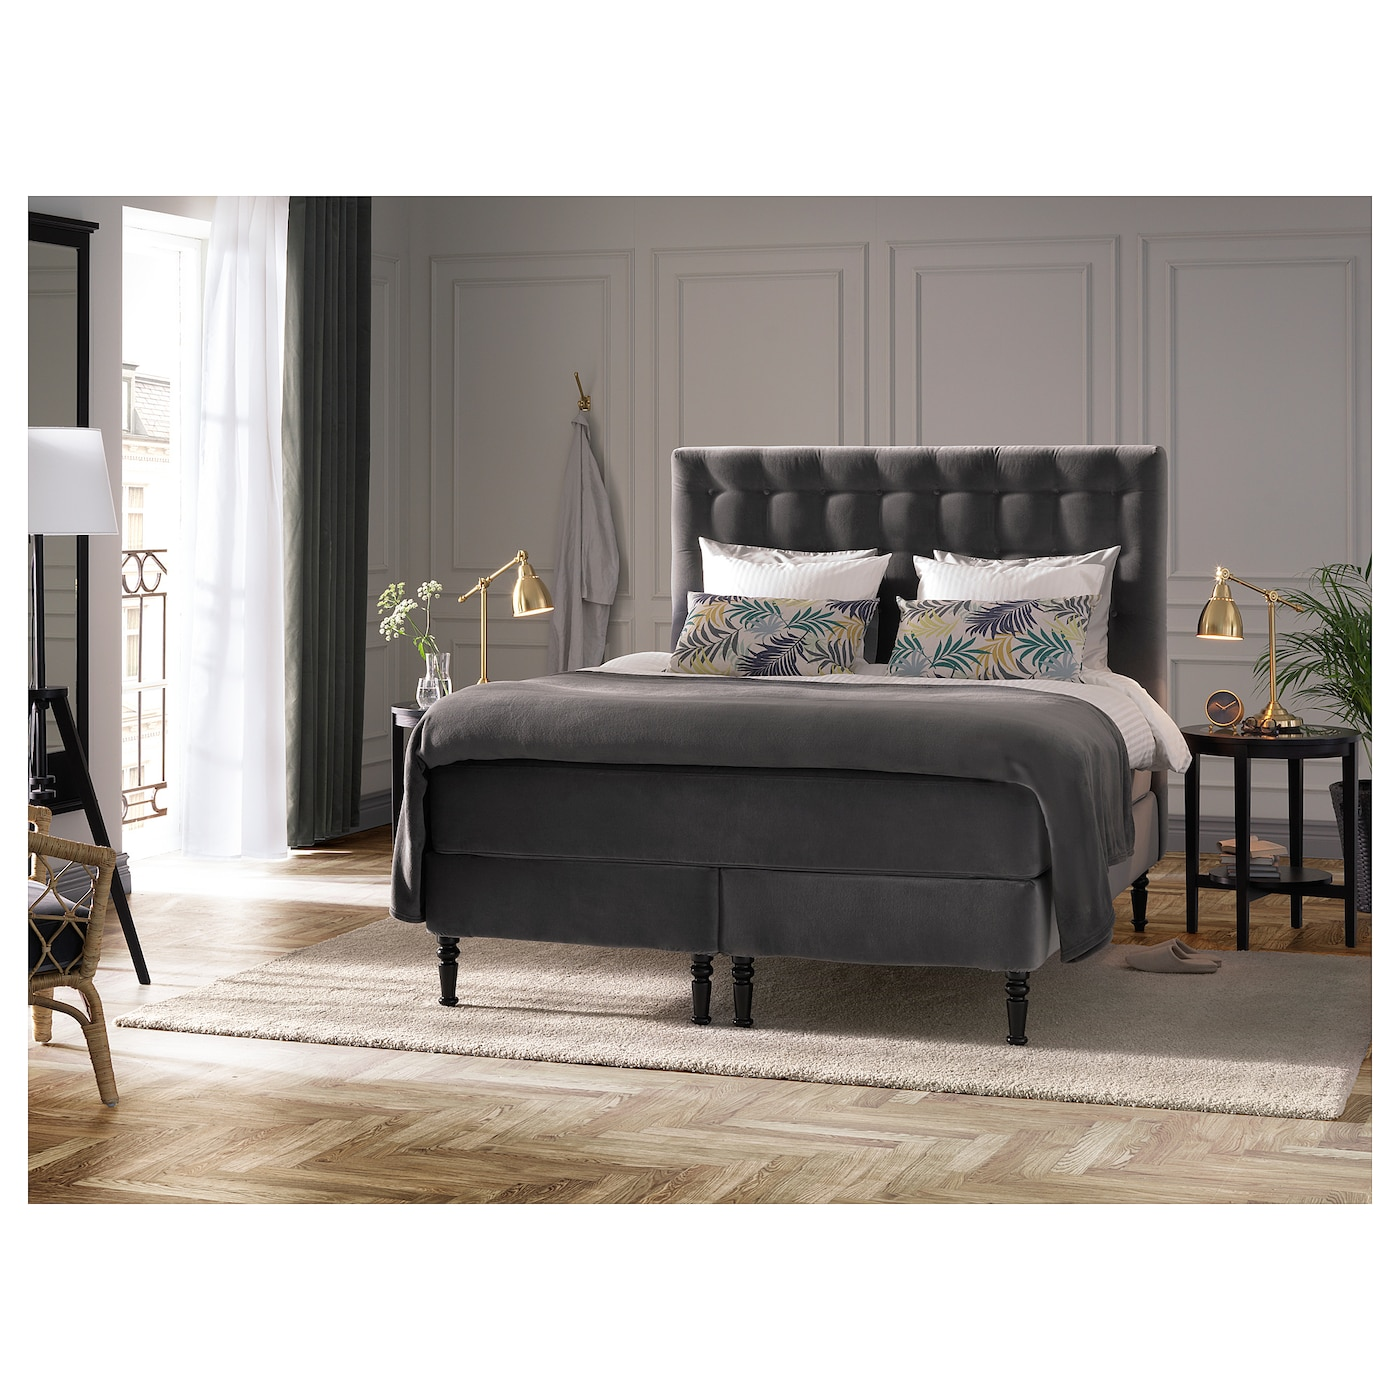 kongsfjord boxspring hyllestad middelhard tustna donkergrijs 160x200 cm ikea. Black Bedroom Furniture Sets. Home Design Ideas